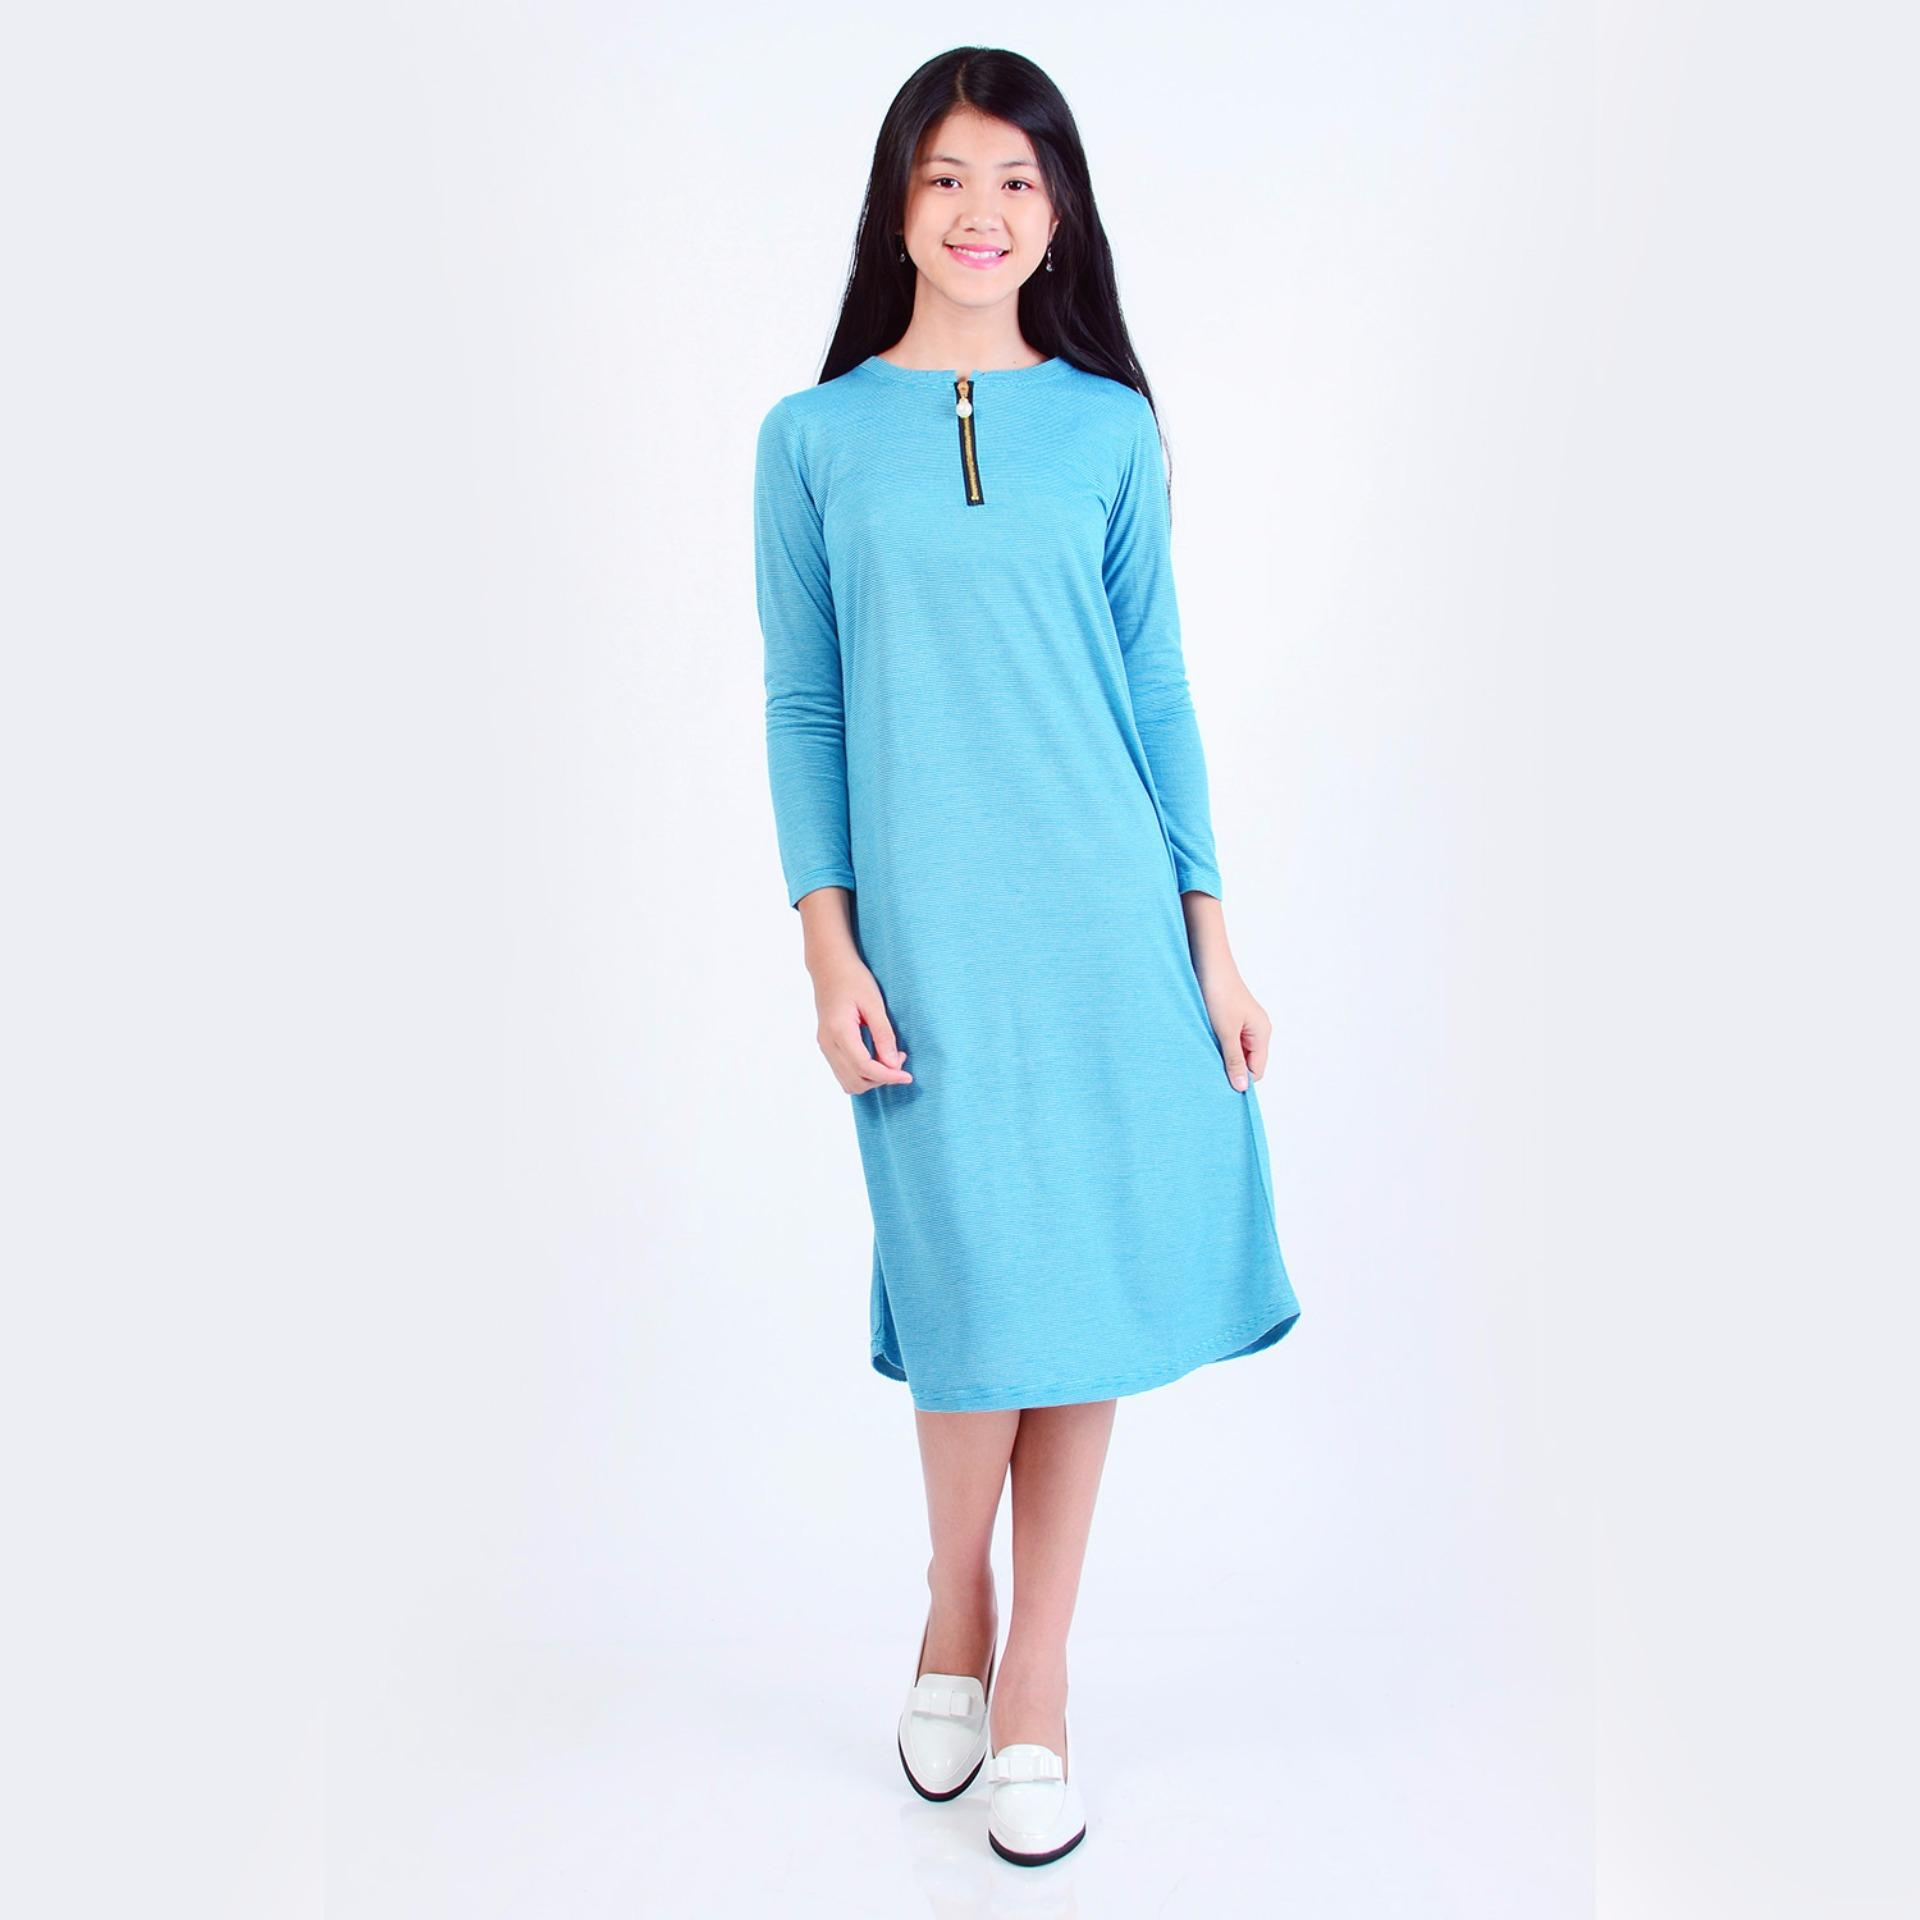 Jfashion Dress Anak variasi seleting tangan Panjang - Aurelteen Biru